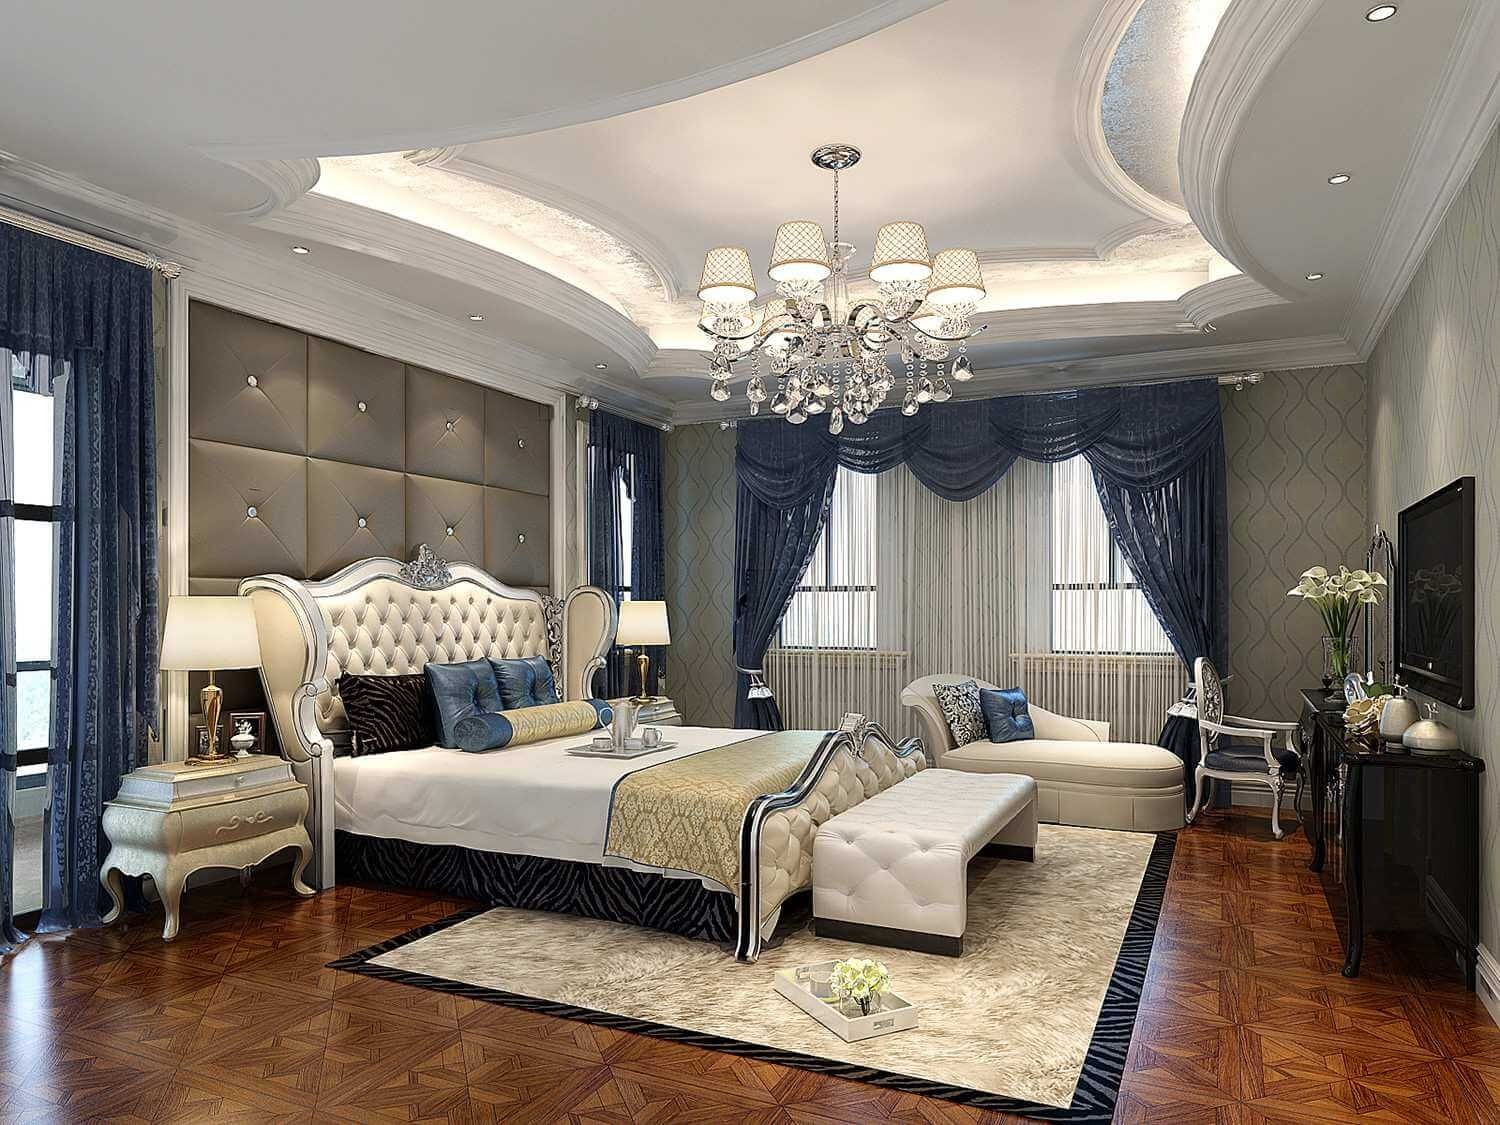 Magnificent Ultra Modern Ceiling Design In Your Bedroom Luxurious Bedrooms Modern Bedroom Ceiling Design Bedroom